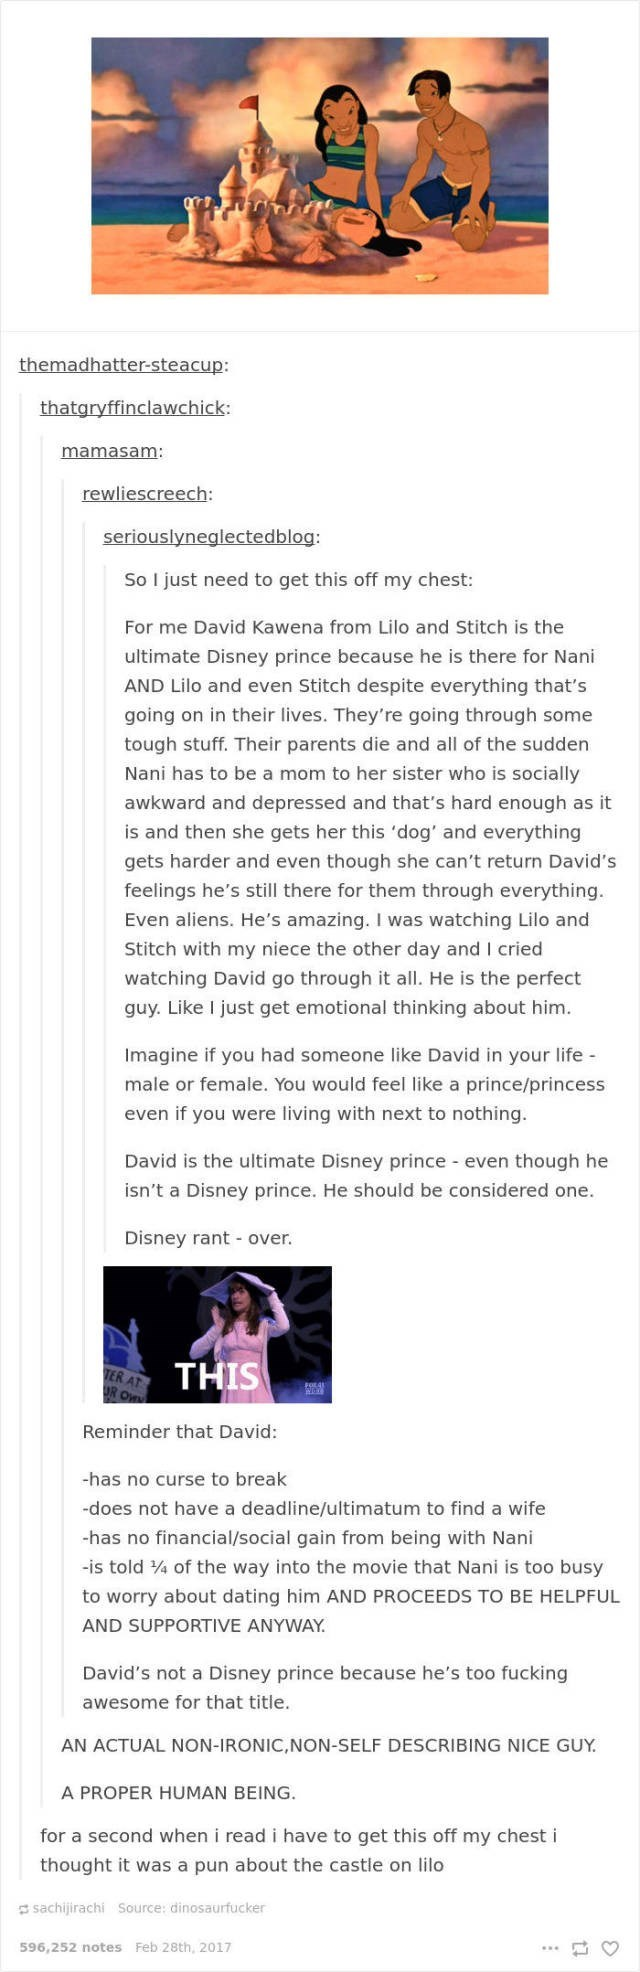 Text - themadhatter-steacup: thatgryffinclawchick: mamasam: rewliescreech: seriouslyneglectedblog: So I just need to get this off my chest: For me David Kawena from Lilo and Stitch is the ultimate Disney prince because he is there for Nani AND Lilo and even Stitch despite everything that's going on in their lives. They're going through some tough stuff. Their parents die and all of the sudden Nani has to be a mom to her sister who is socially awkward and depressed and that's hard enough as it is